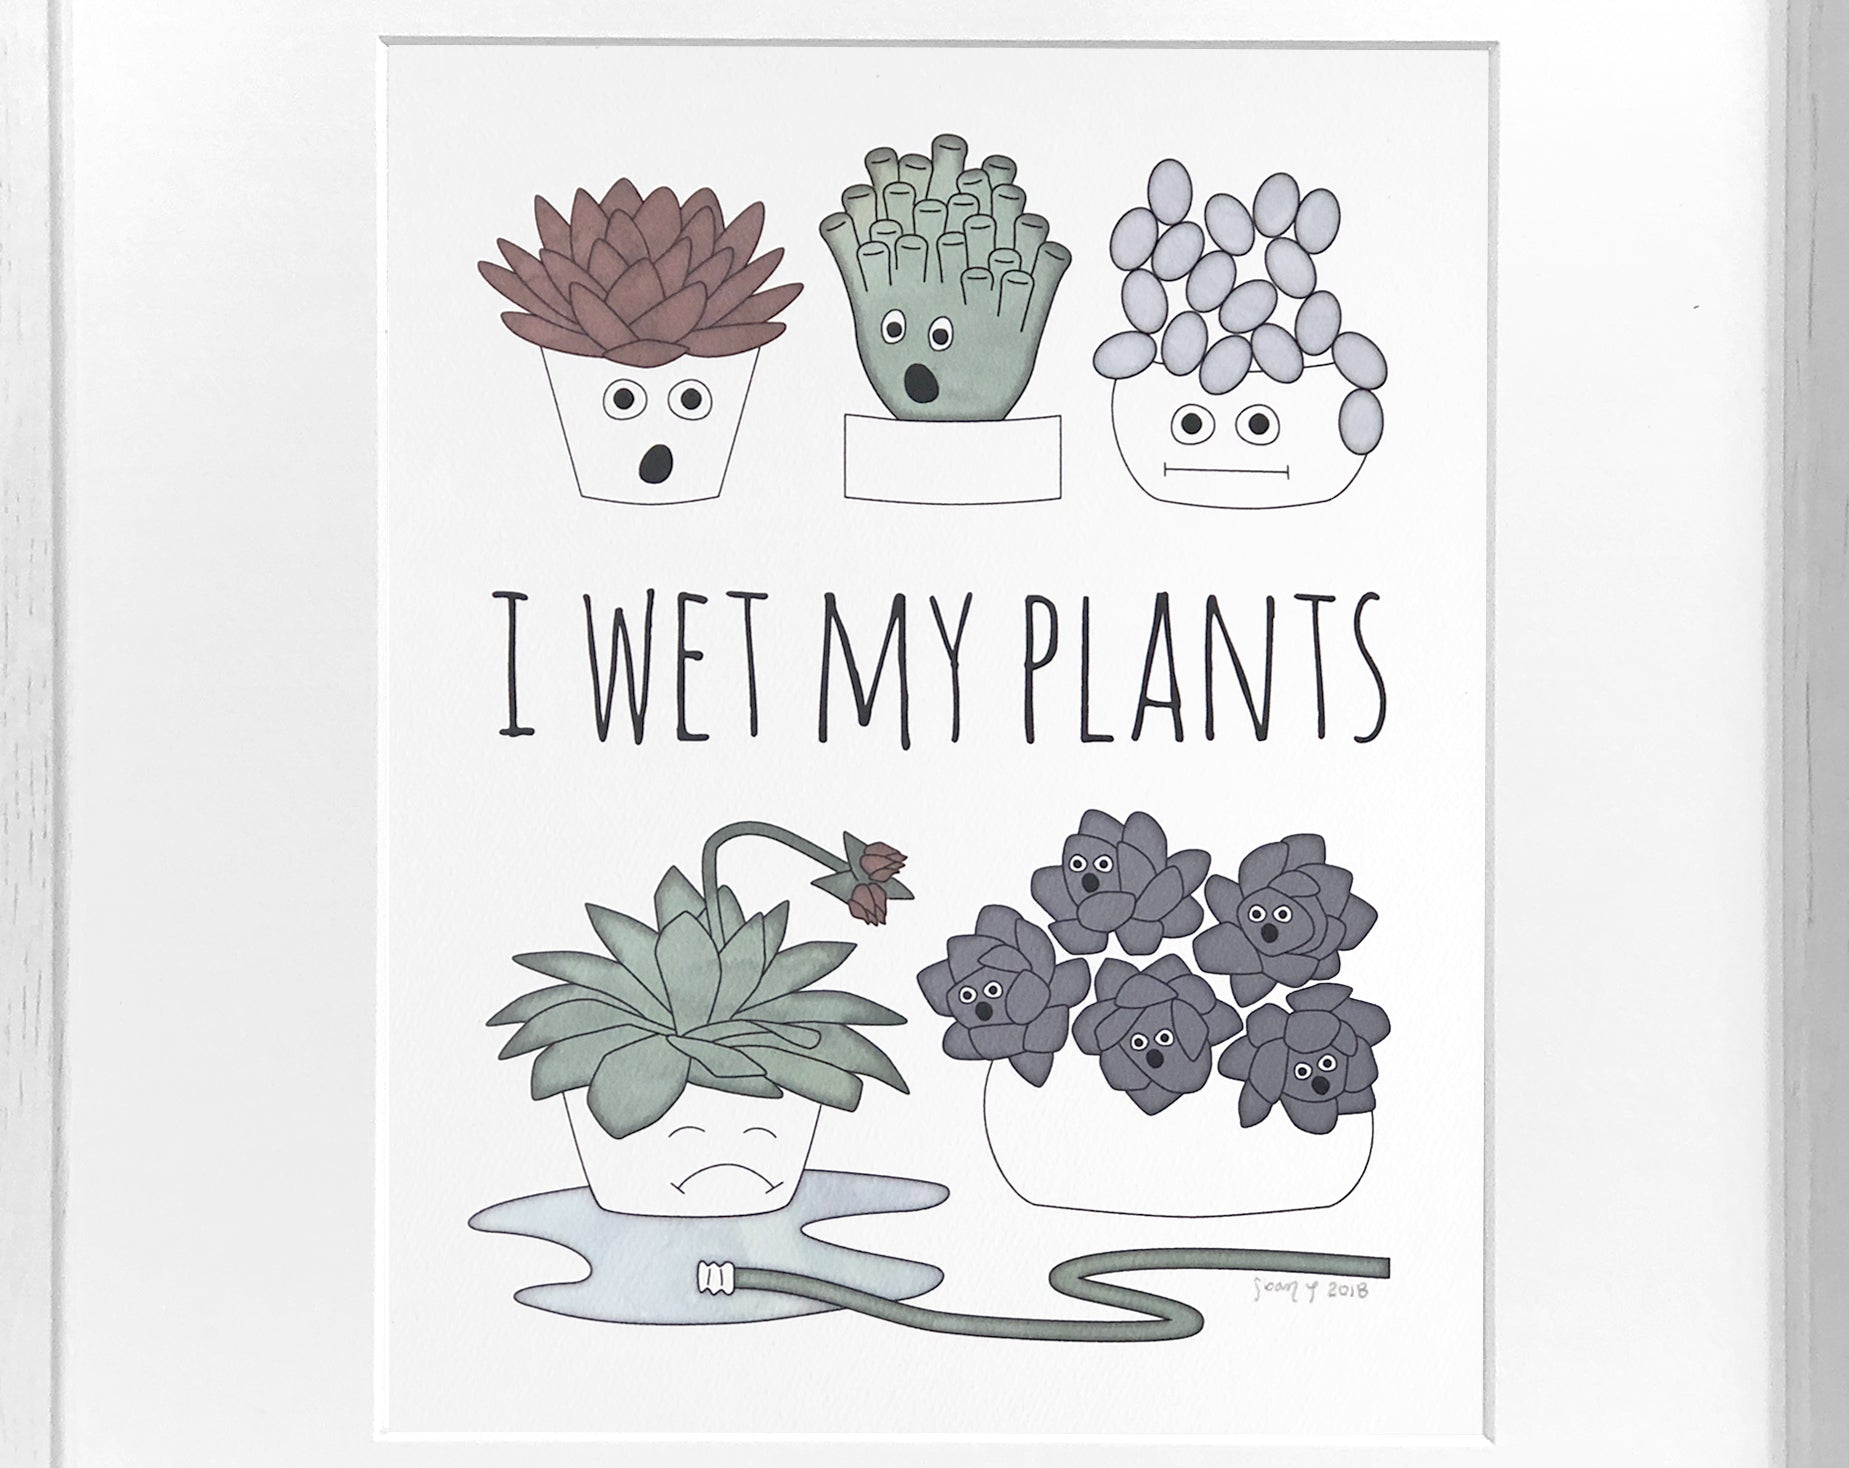 succulent art print [I wet my plants]